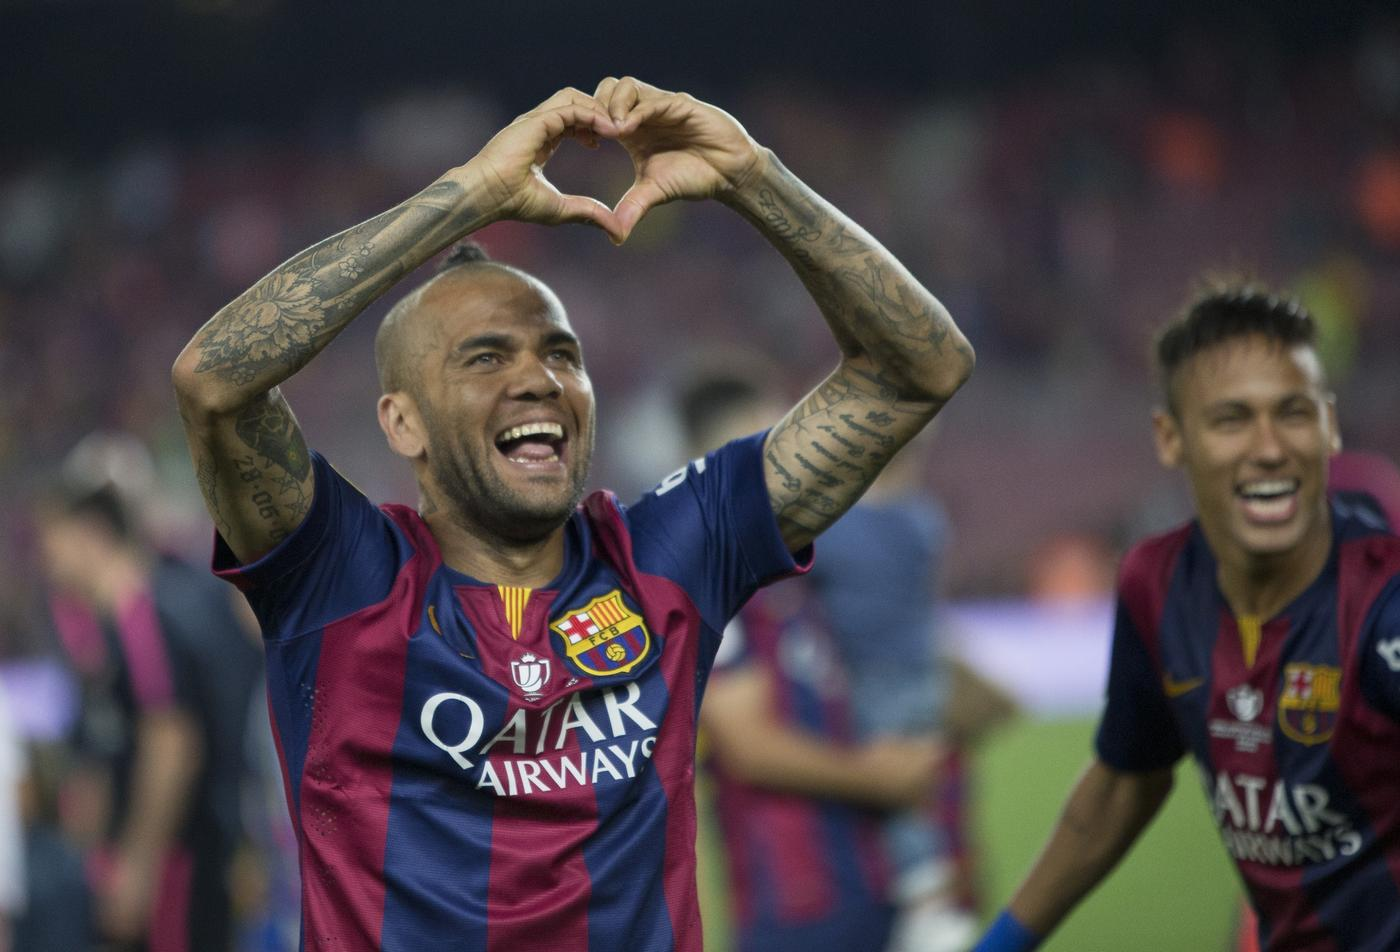 Dani Alves 'leaves Barcelona annoyed after agreeing Manchester United transfer'